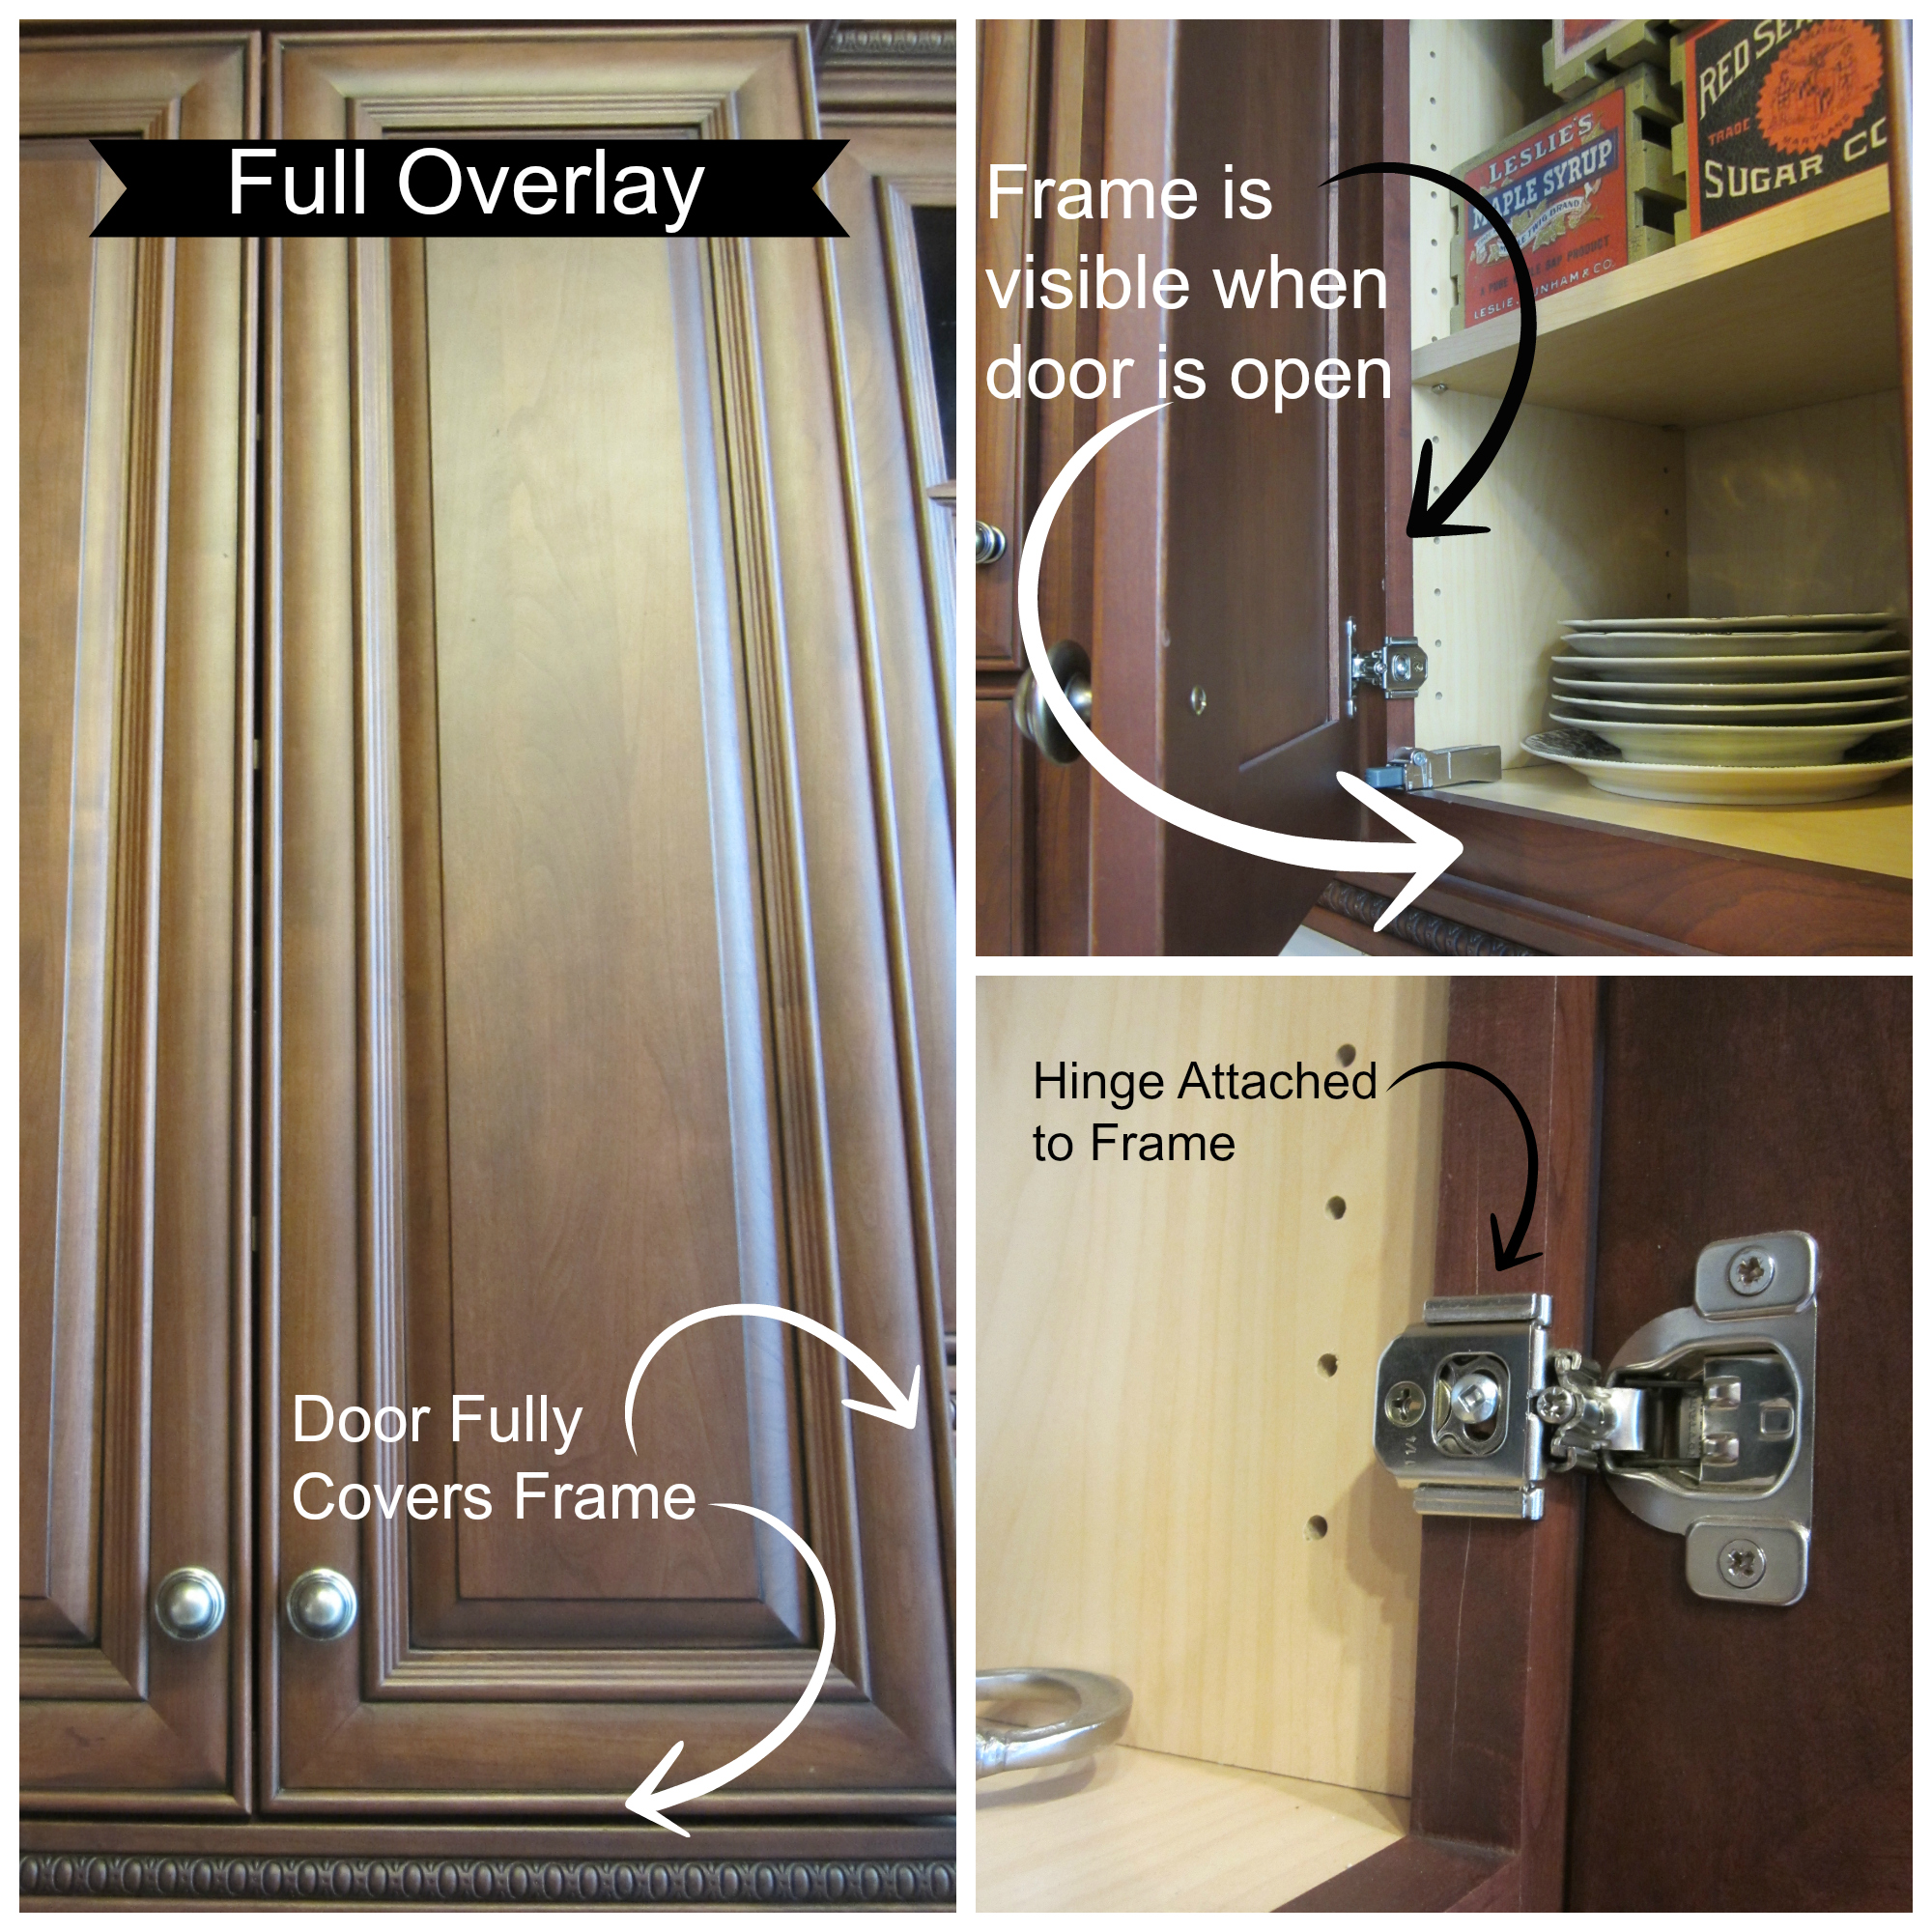 Partial Overlay Kitchen Cabinet Doors: Navigating The World Of Cabinetry